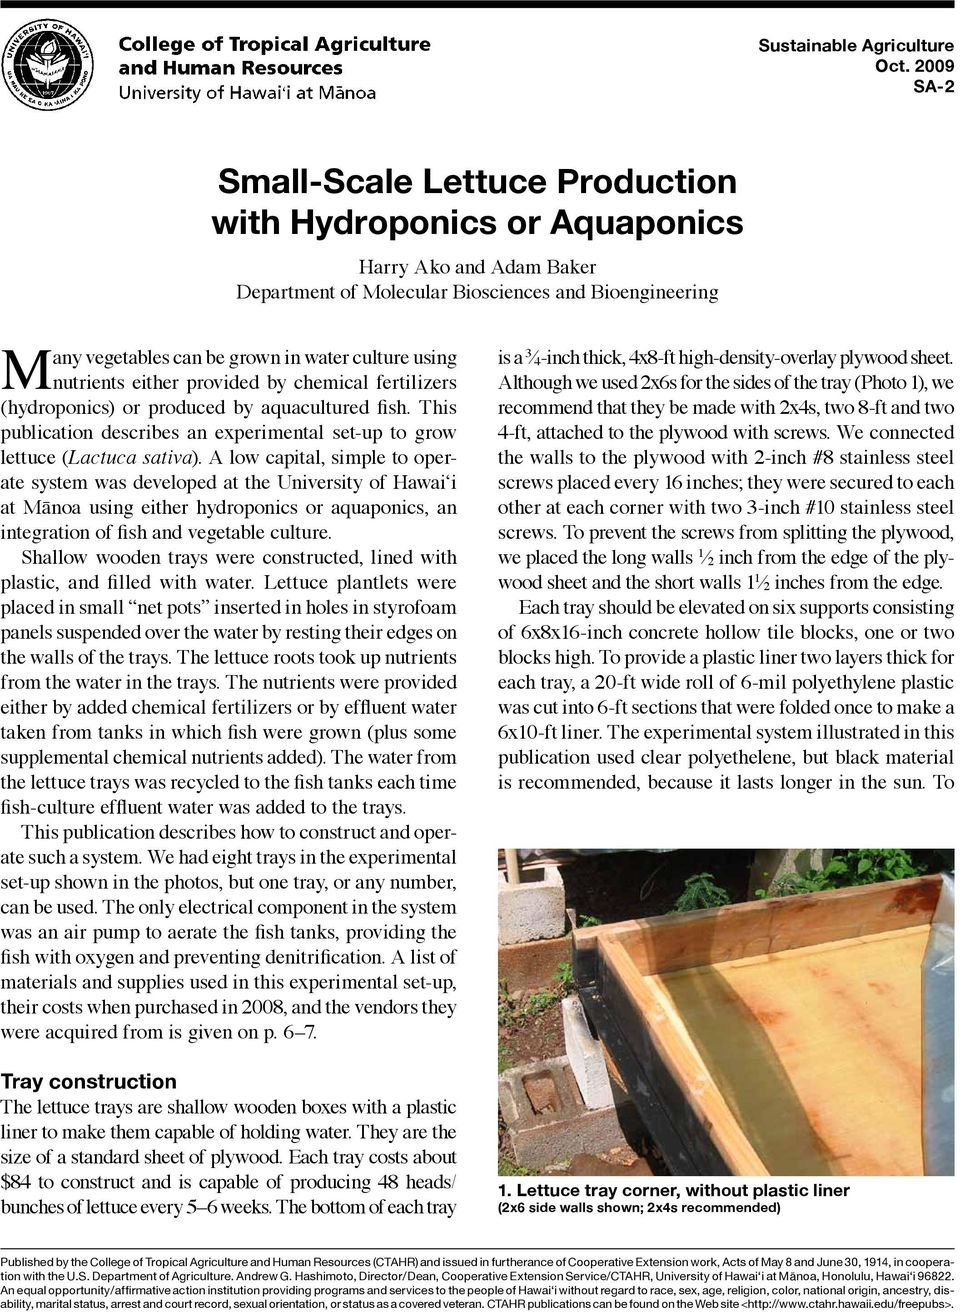 using nutrients either provided by chemical fertilizers (hydroponics) or produced by aquacultured fish. This publication describes an experimental set-up to grow lettuce (Lactuca sativa).